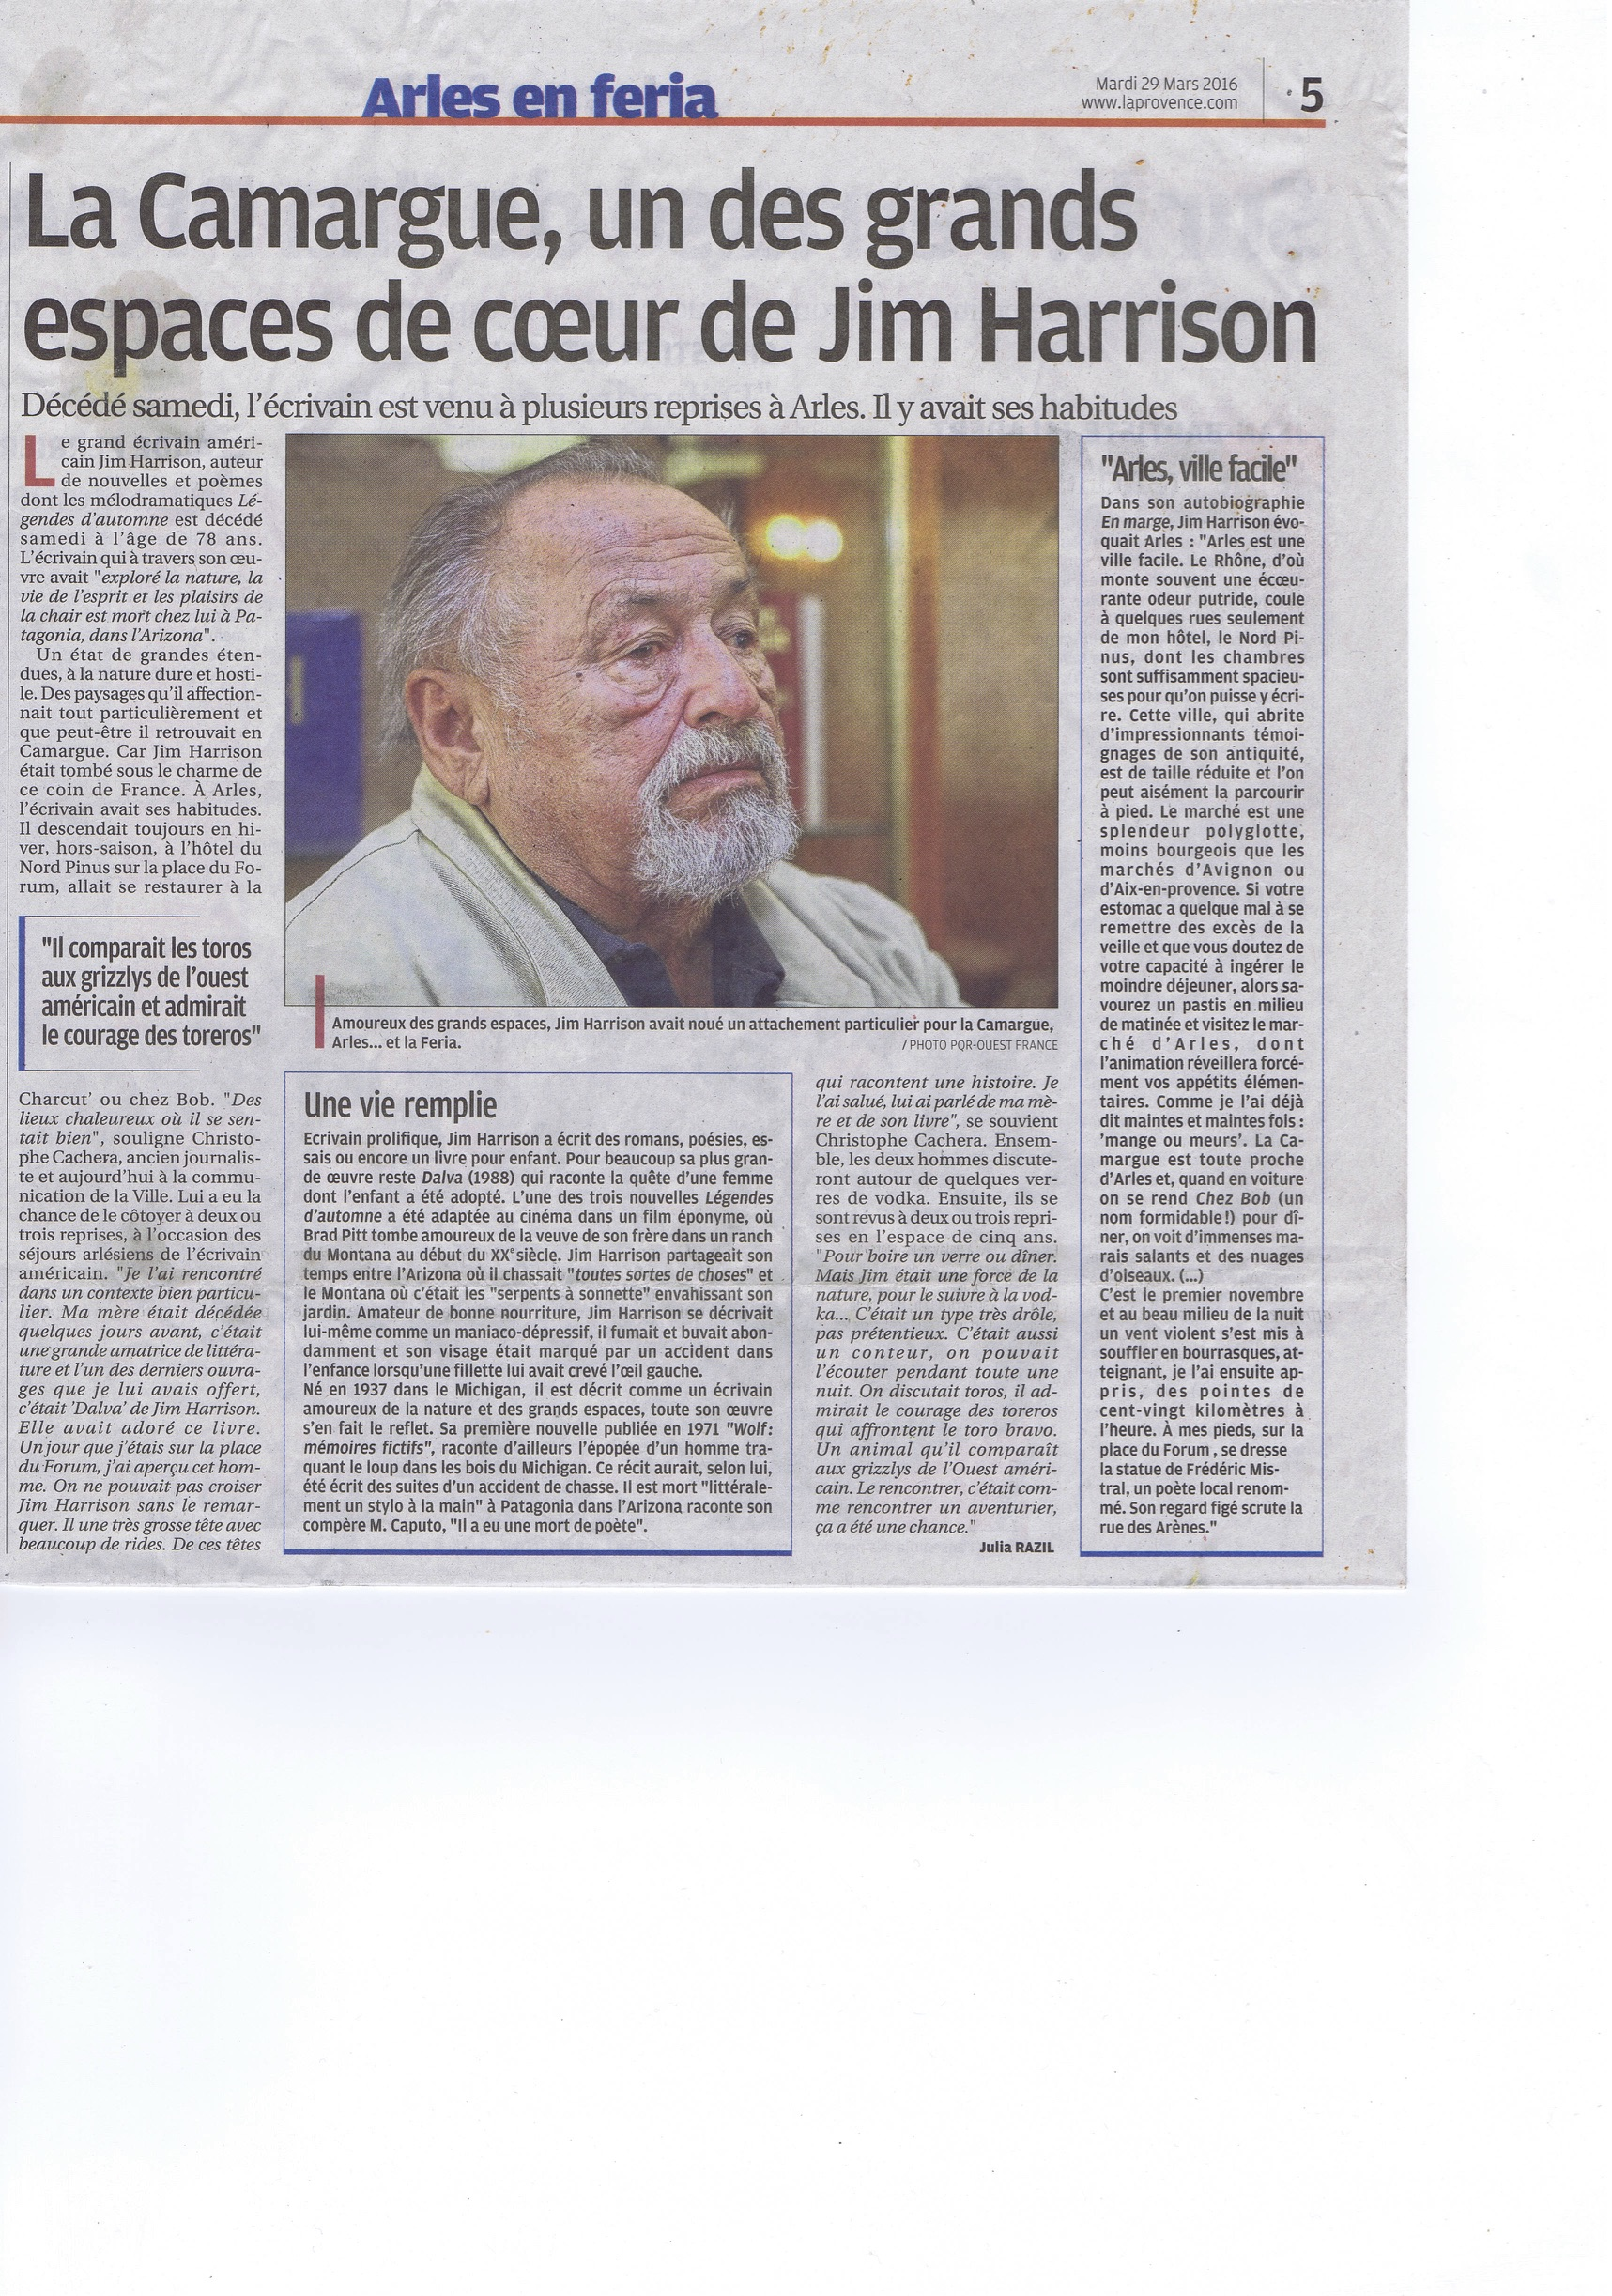 article sur Jim Harrison